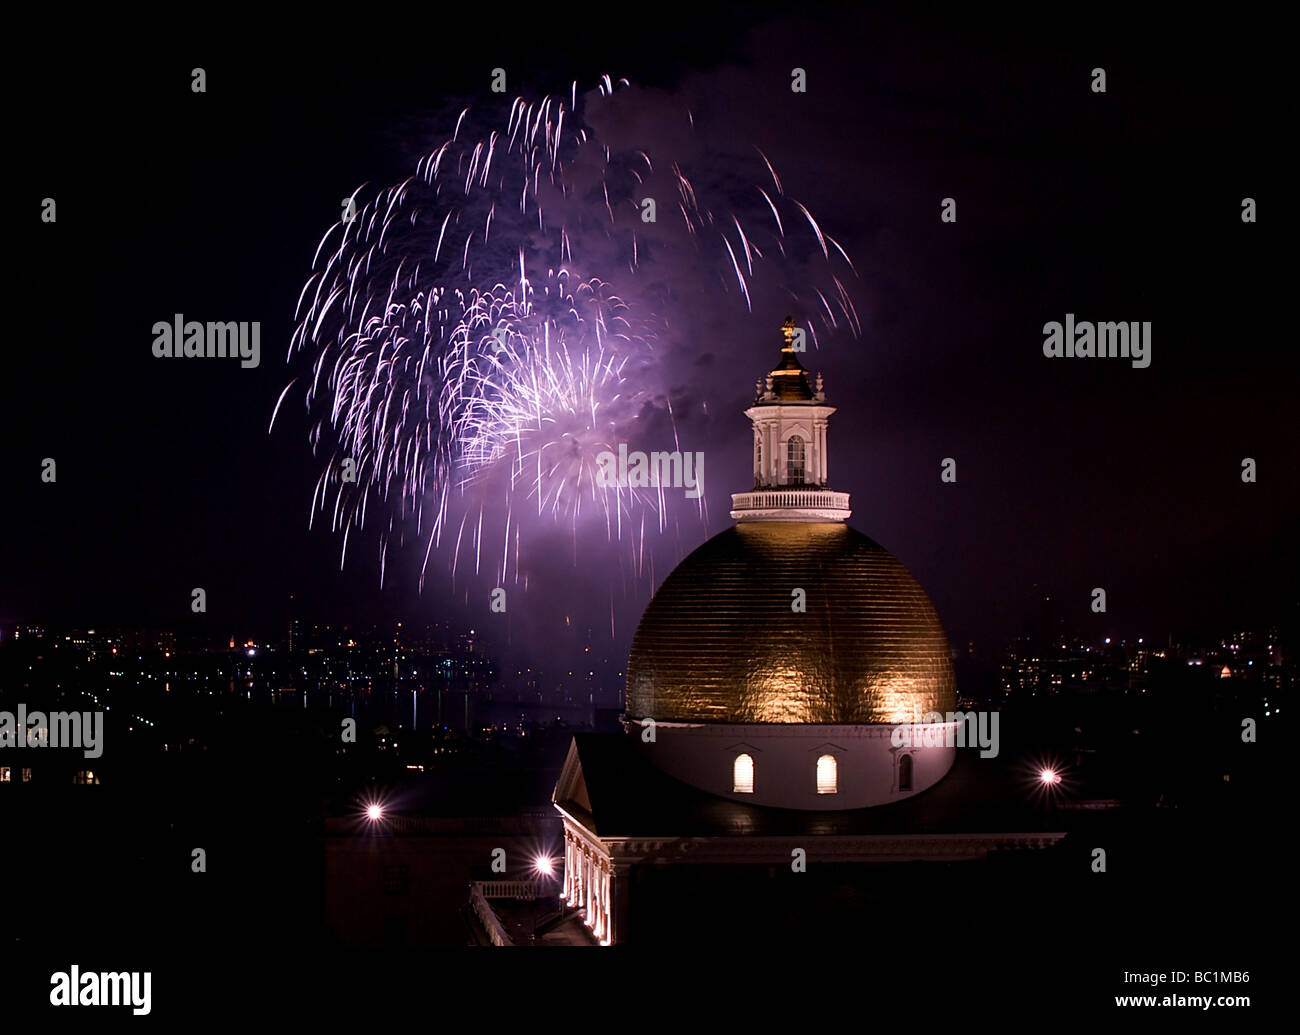 fourth of july fireworks explode in the sky over the charles river with the massachusetts state house in the foreground - Stock Image